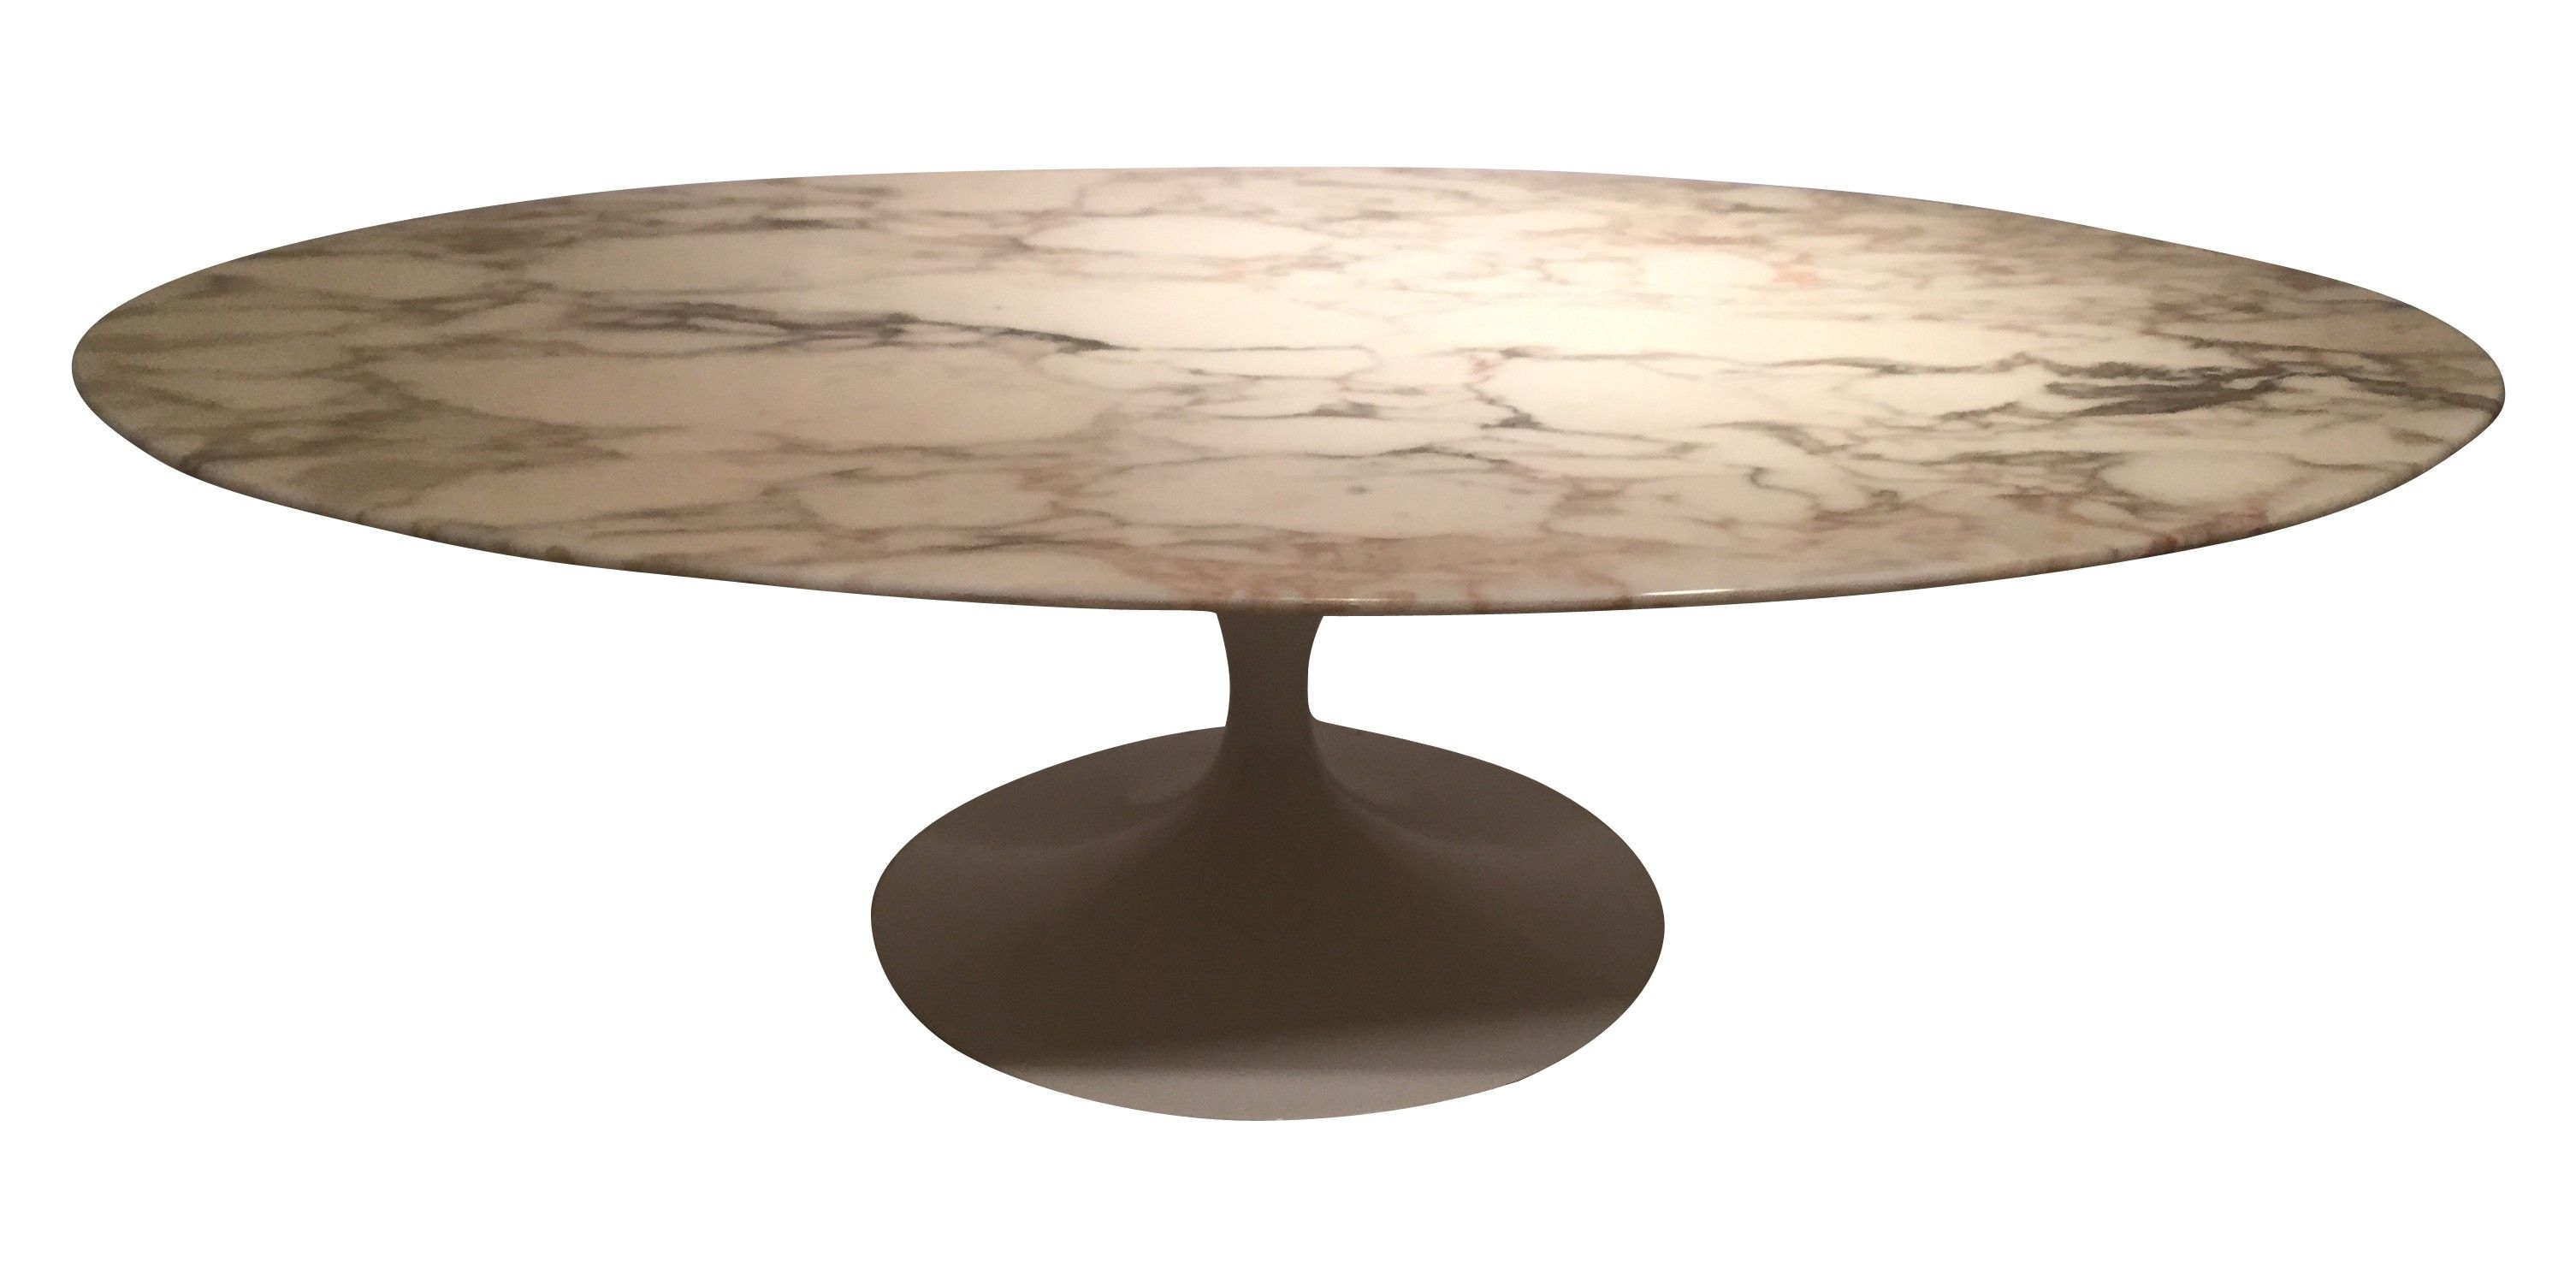 Grande table basse ovale par eero saarinen datant des ann es 70 edition kno - Table basse de couleur ...